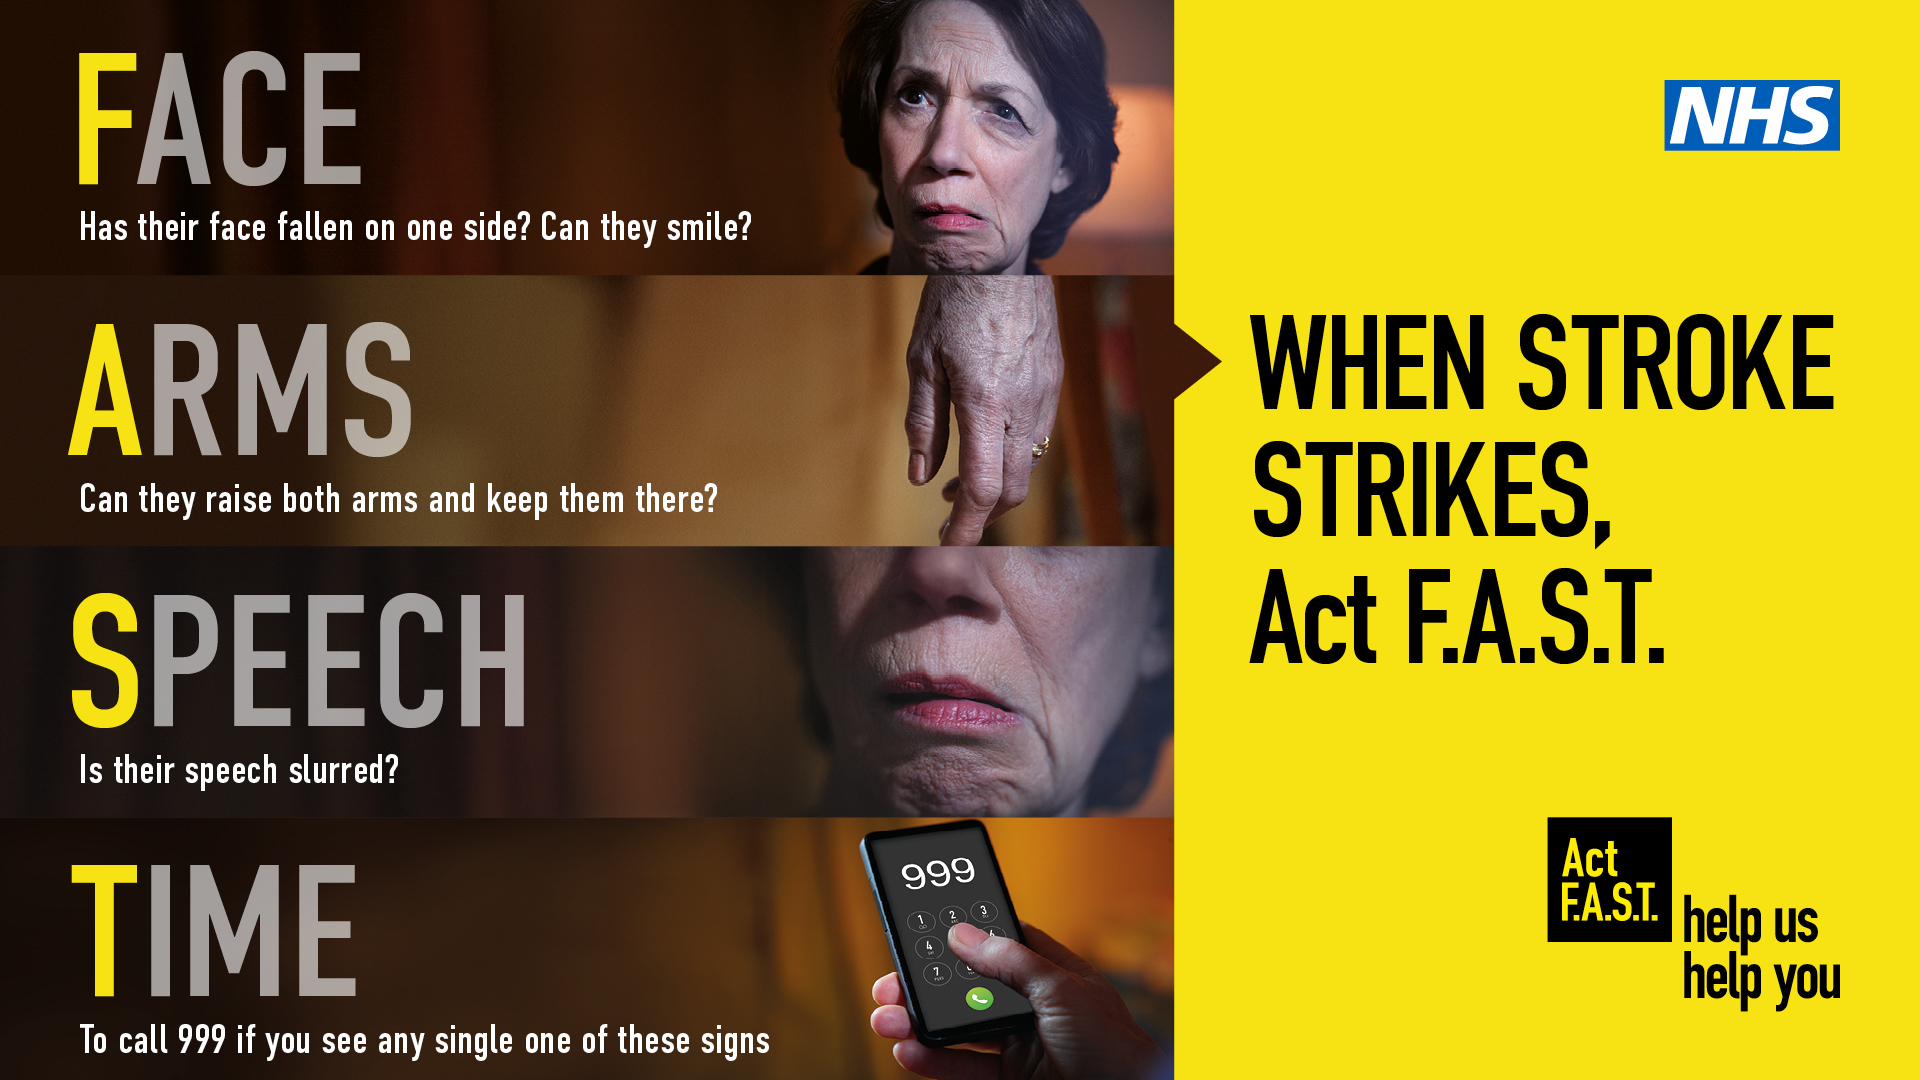 Act F.A.S.T.'  (Face, Arms, Speech, Time)